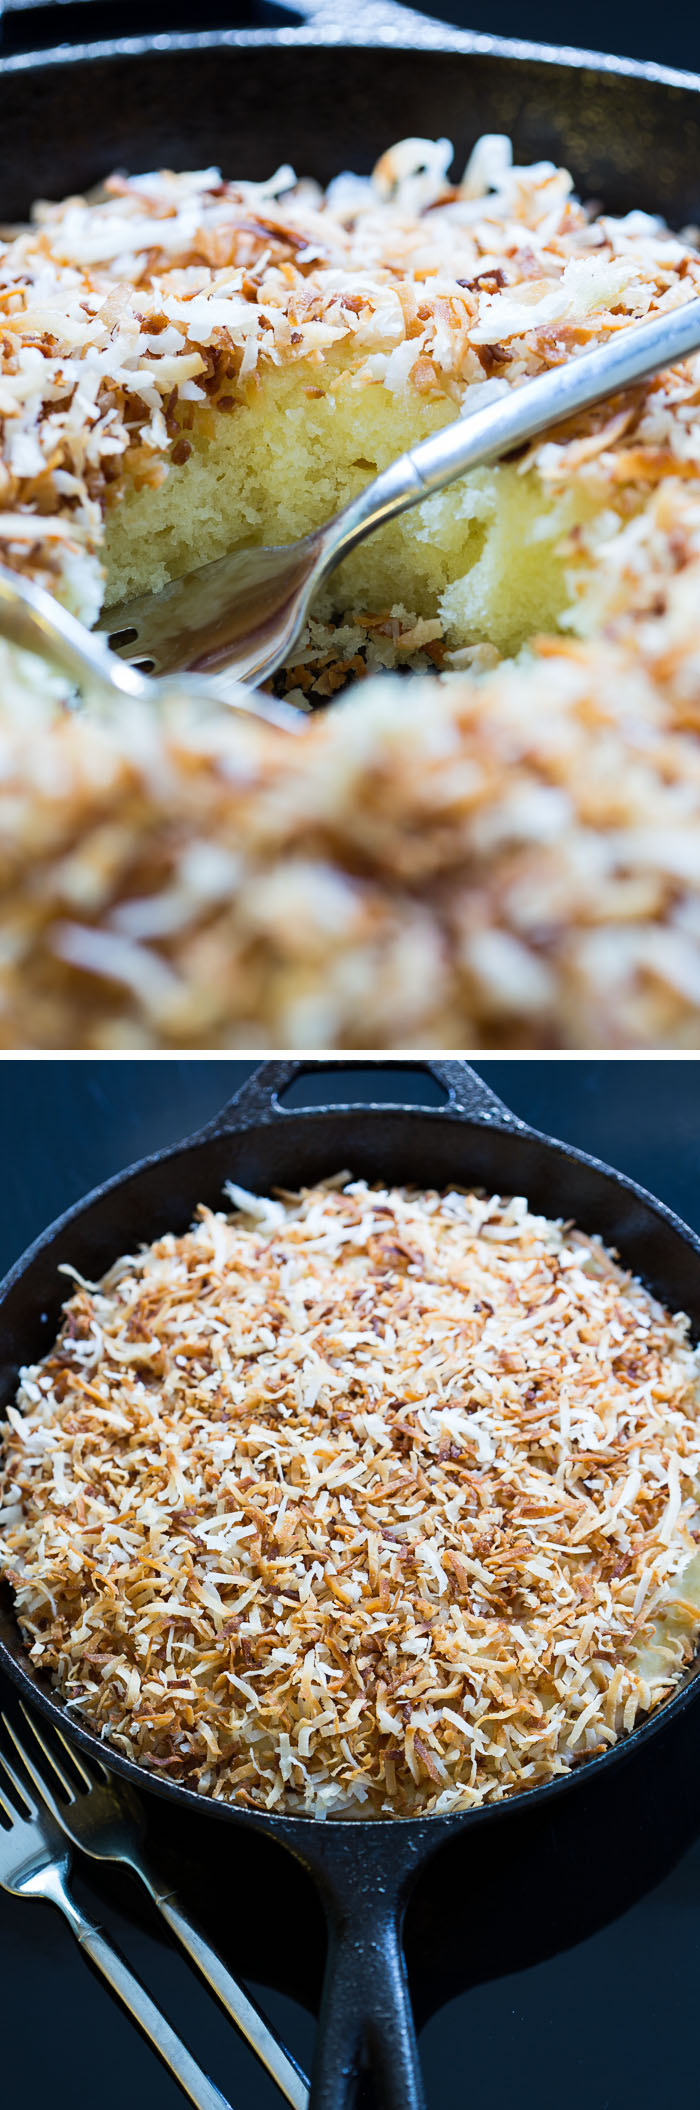 Hot Toasted Coconut Cake